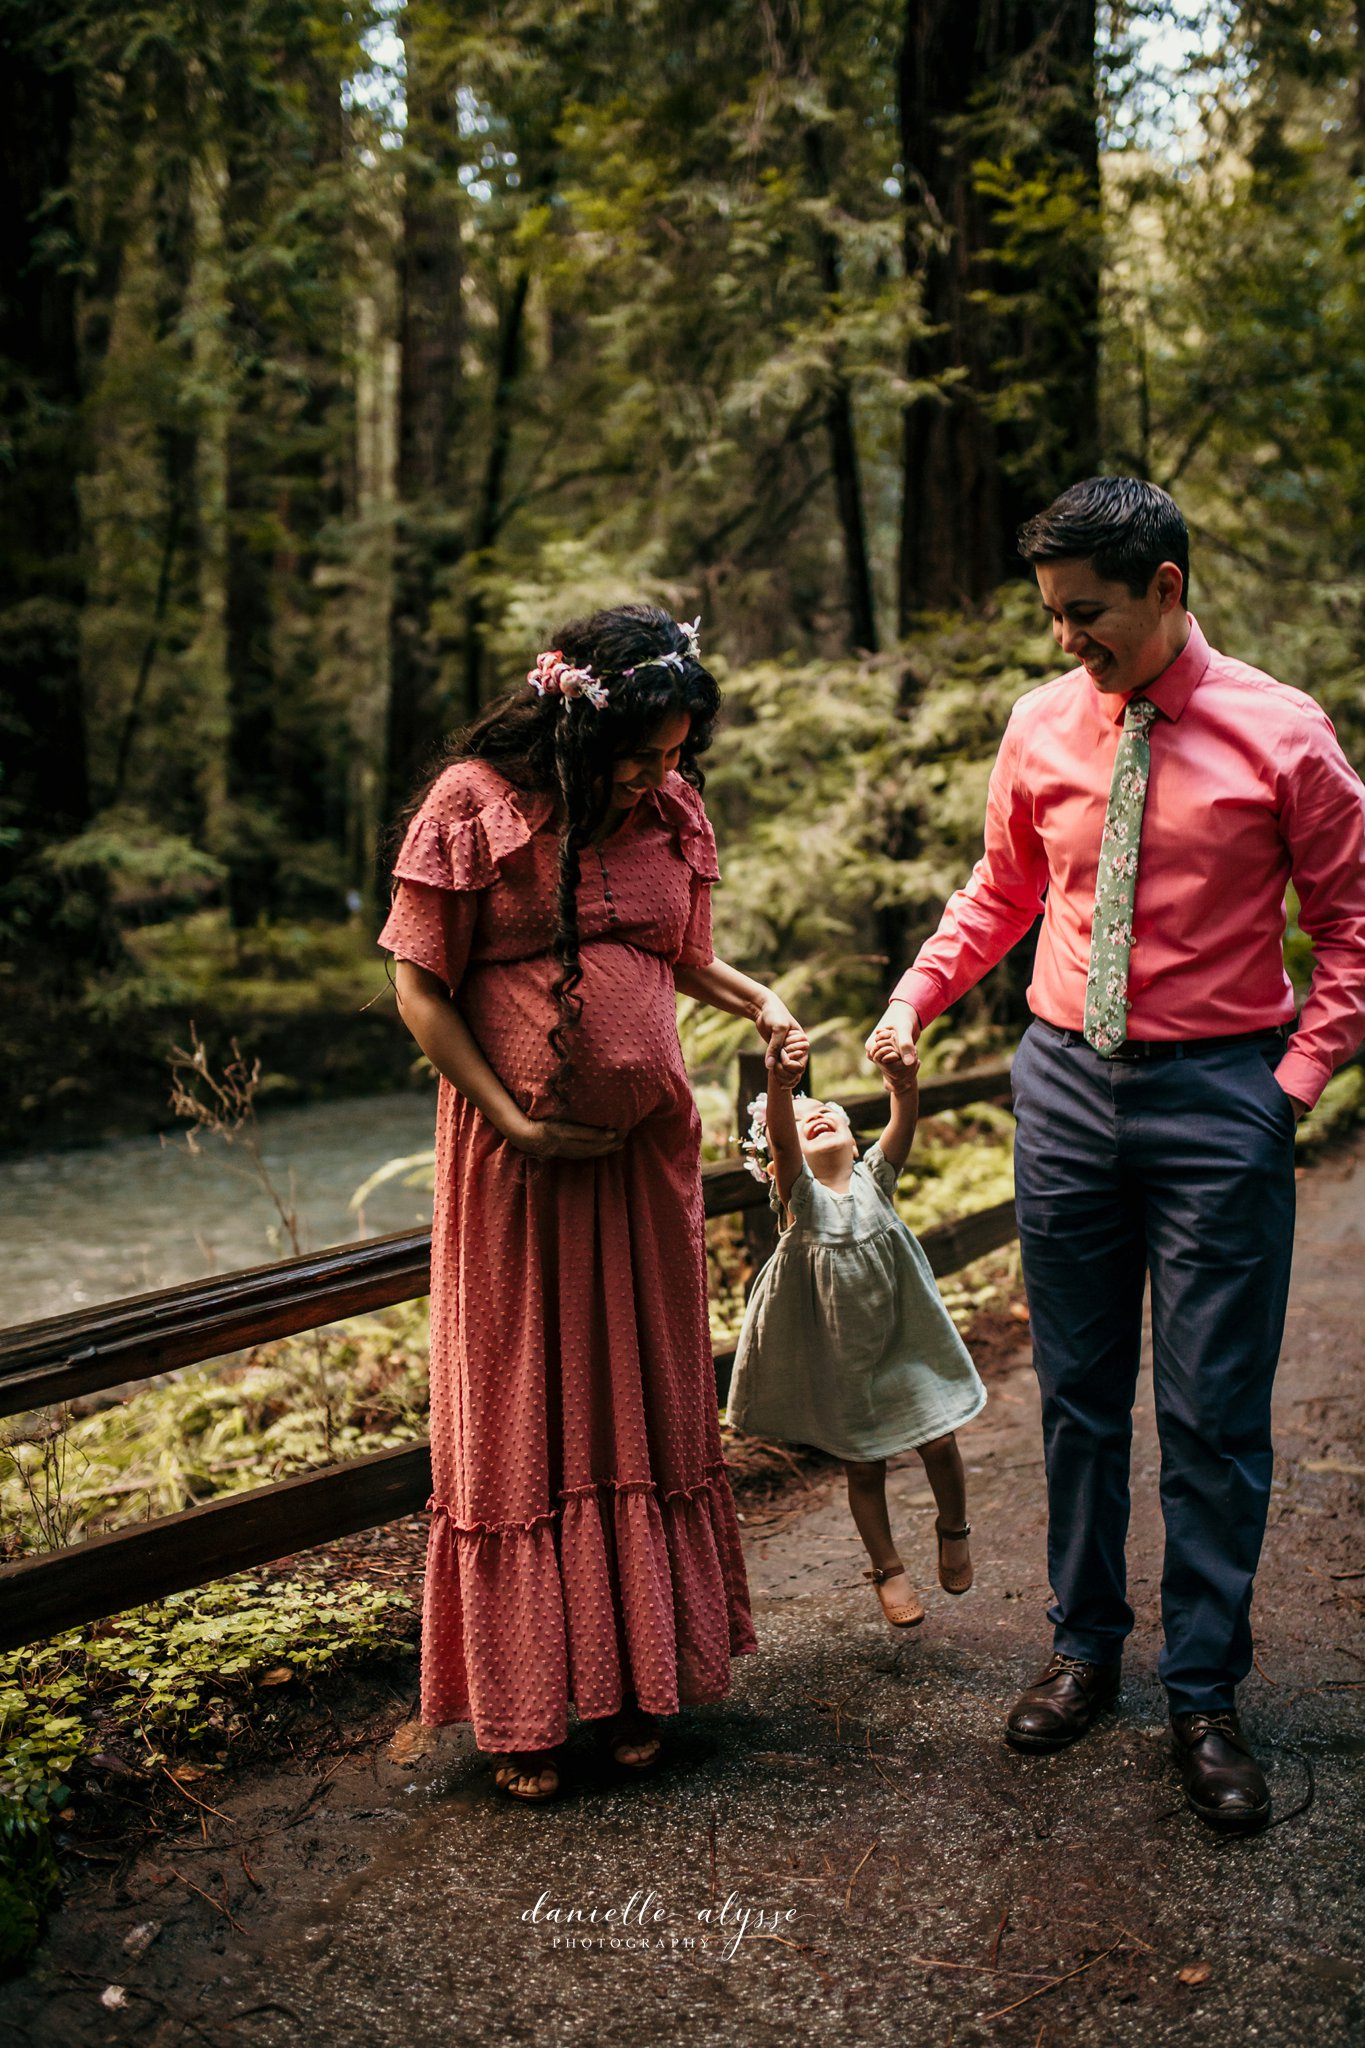 190216_maternity_india_family_muir_woods_bay_danielle_alysse_photography_15_WEB.jpg